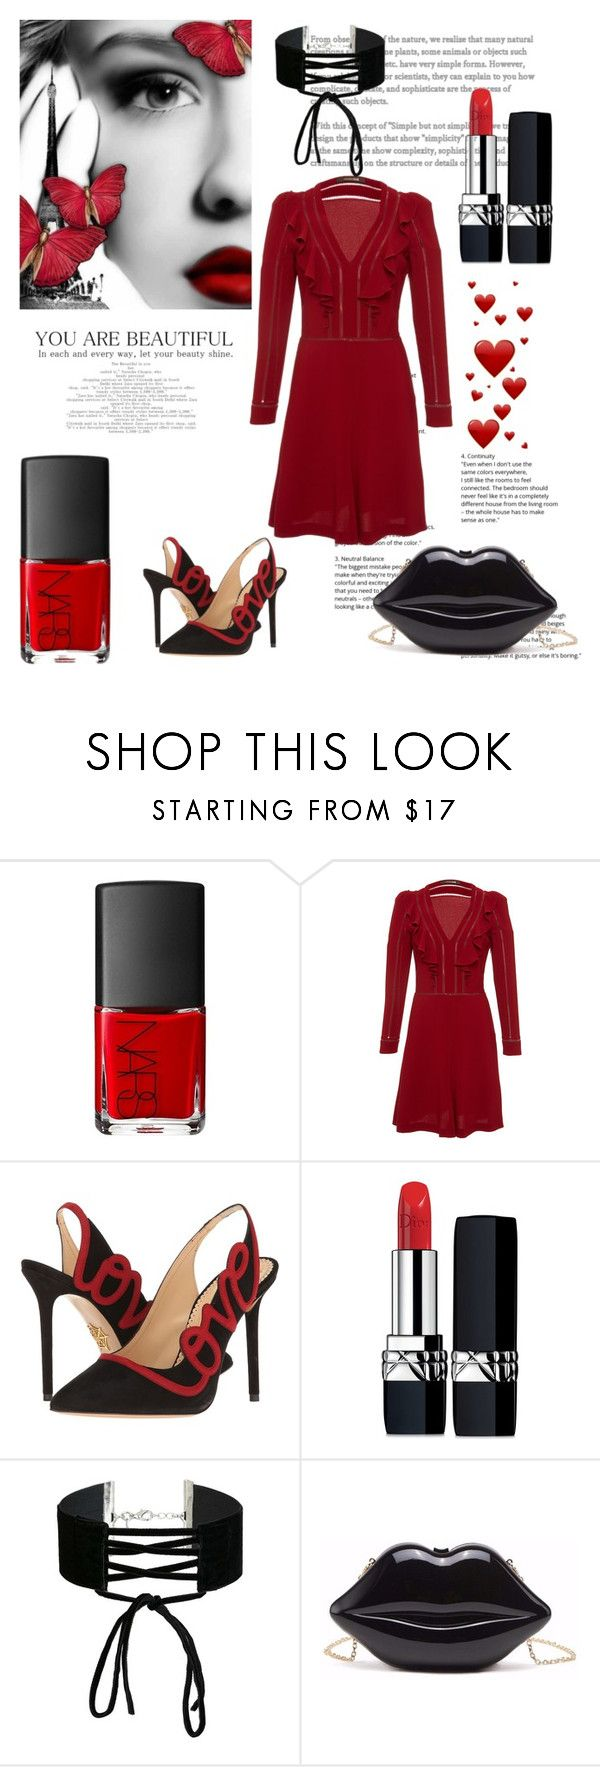 """""""You are beautiful"""" by im-karla-with-a-k ❤ liked on Polyvore featuring Roberto Cavalli, Charlotte Olympia, Christian Dior and Miss Selfridge"""